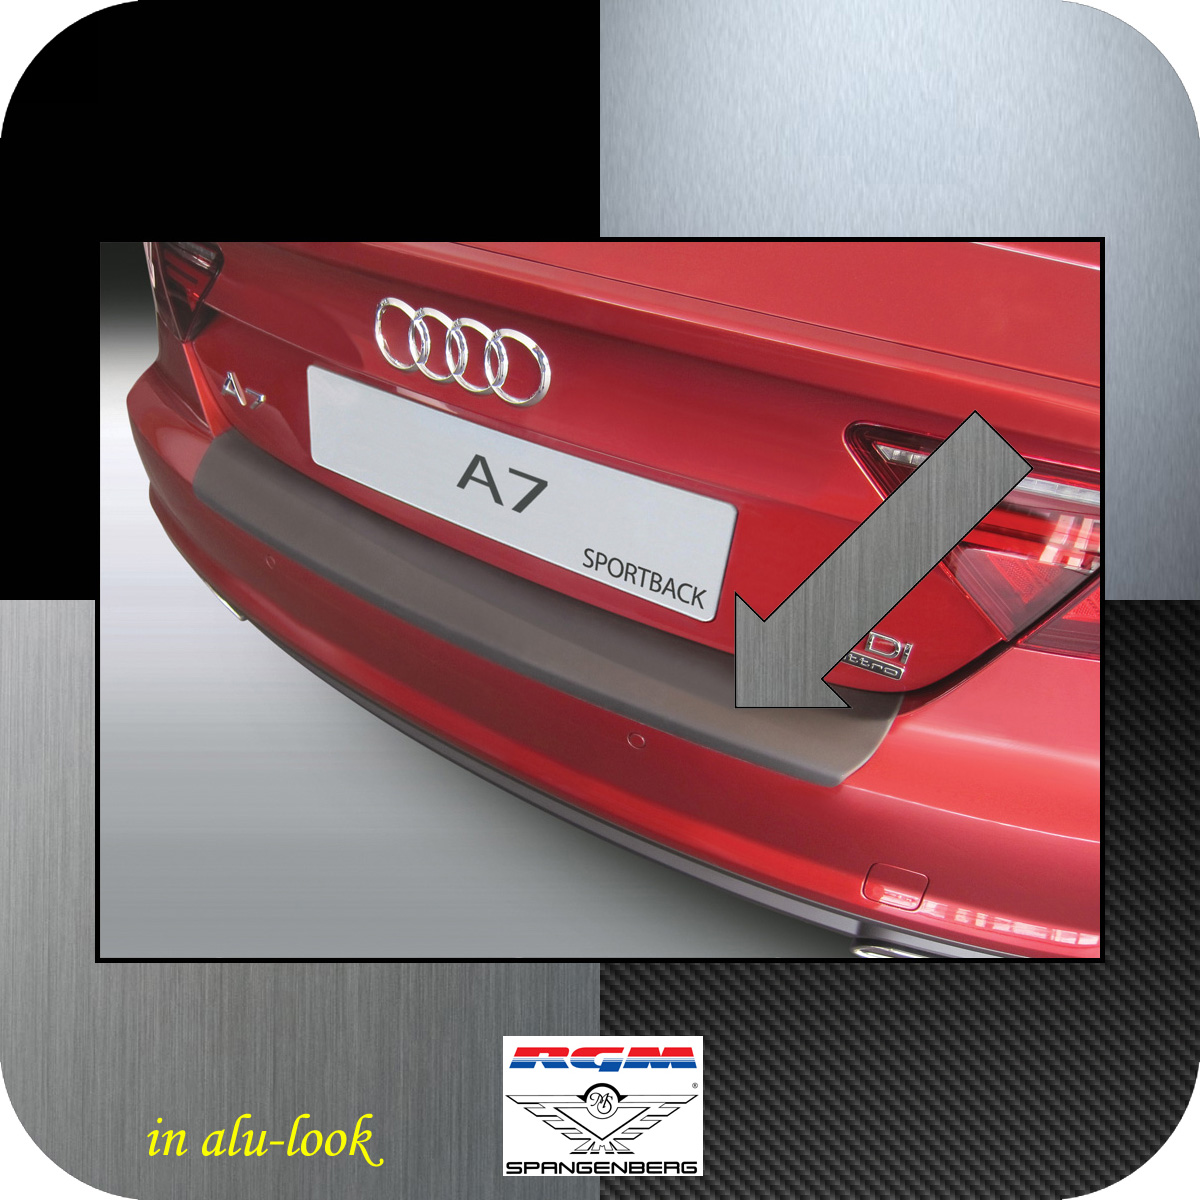 Ladekantenschutz Alu Look Audi A7 Rs7 5 Trer Sportback Bj 2017 18 With A Red Colour 3504991